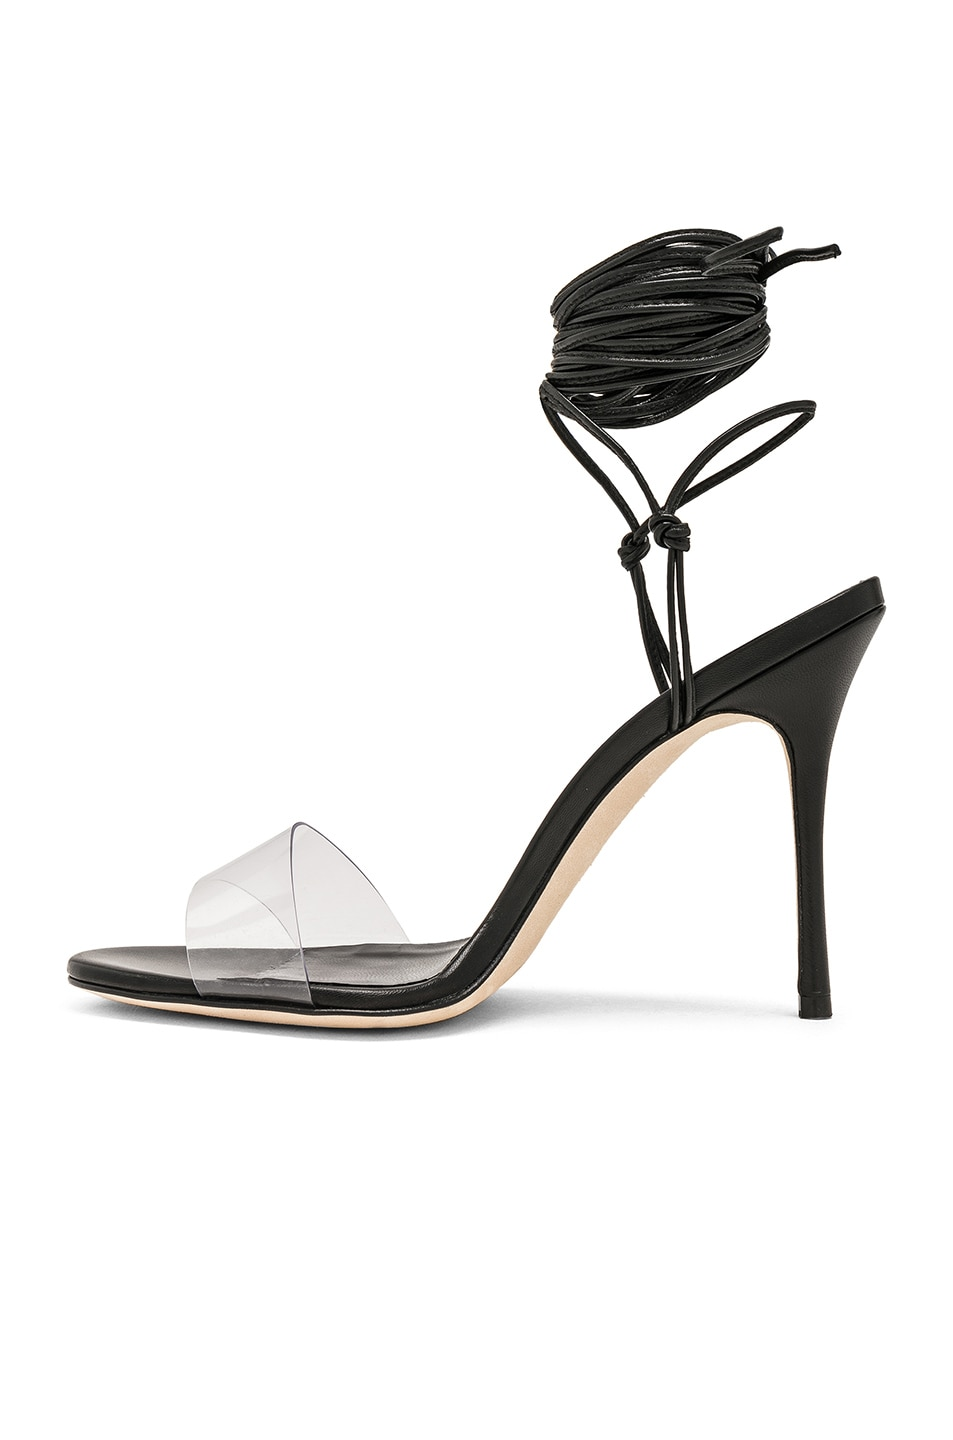 Image 5 of Manolo Blahnik Priscestro 105 Heel in Black & Clear